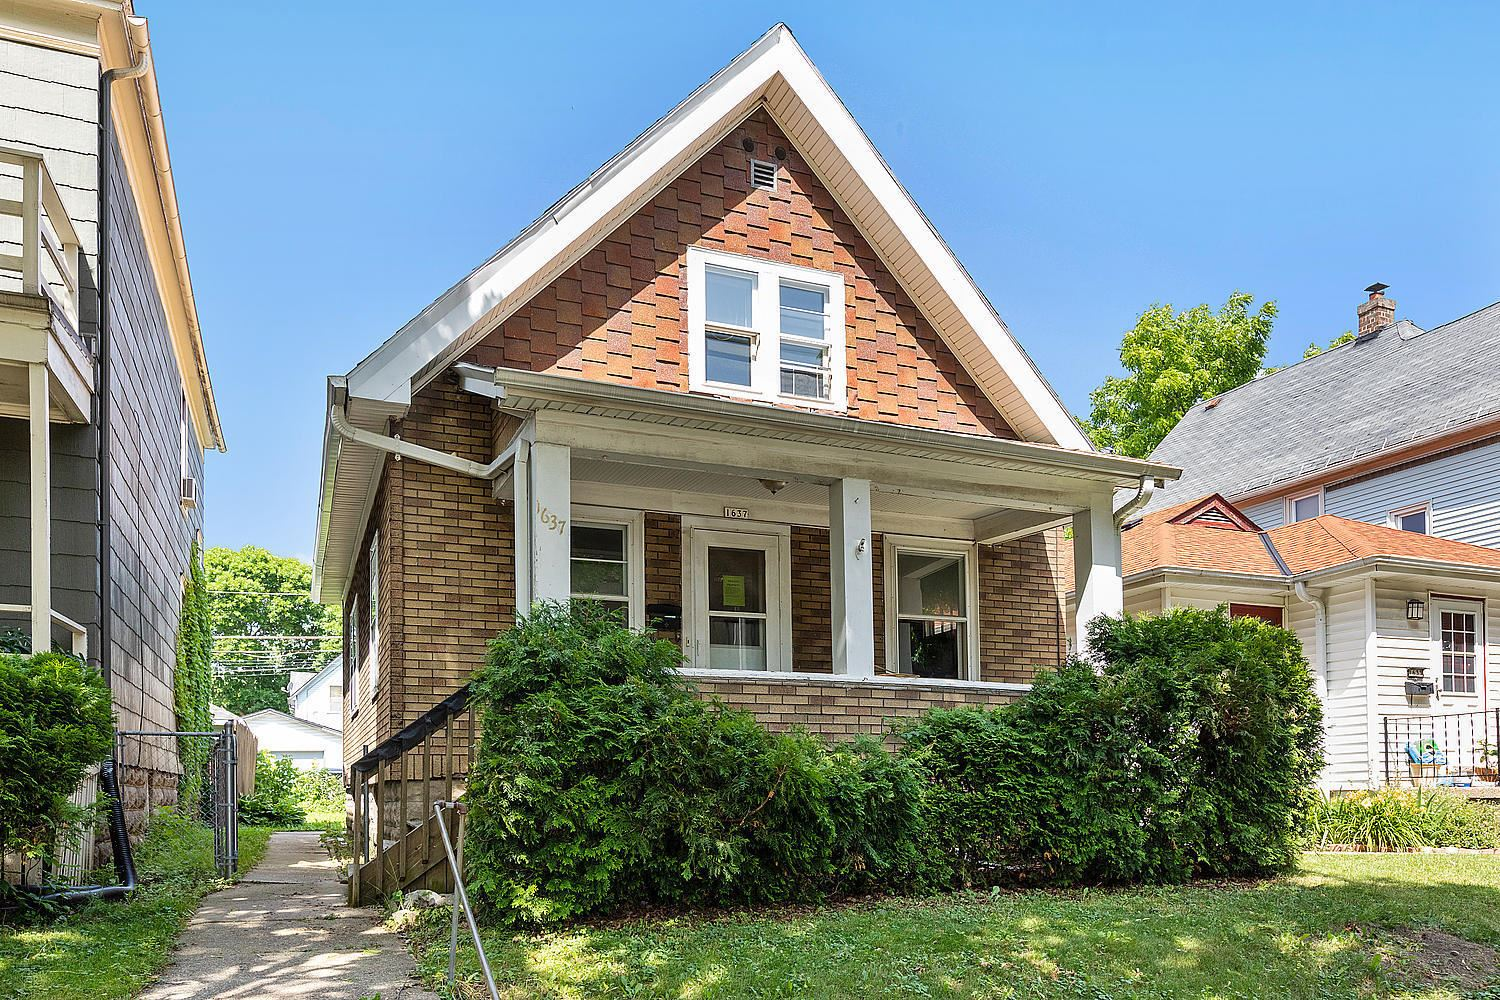 1637 S 63rd St, West Allis, WI 53214 - #: 1696561